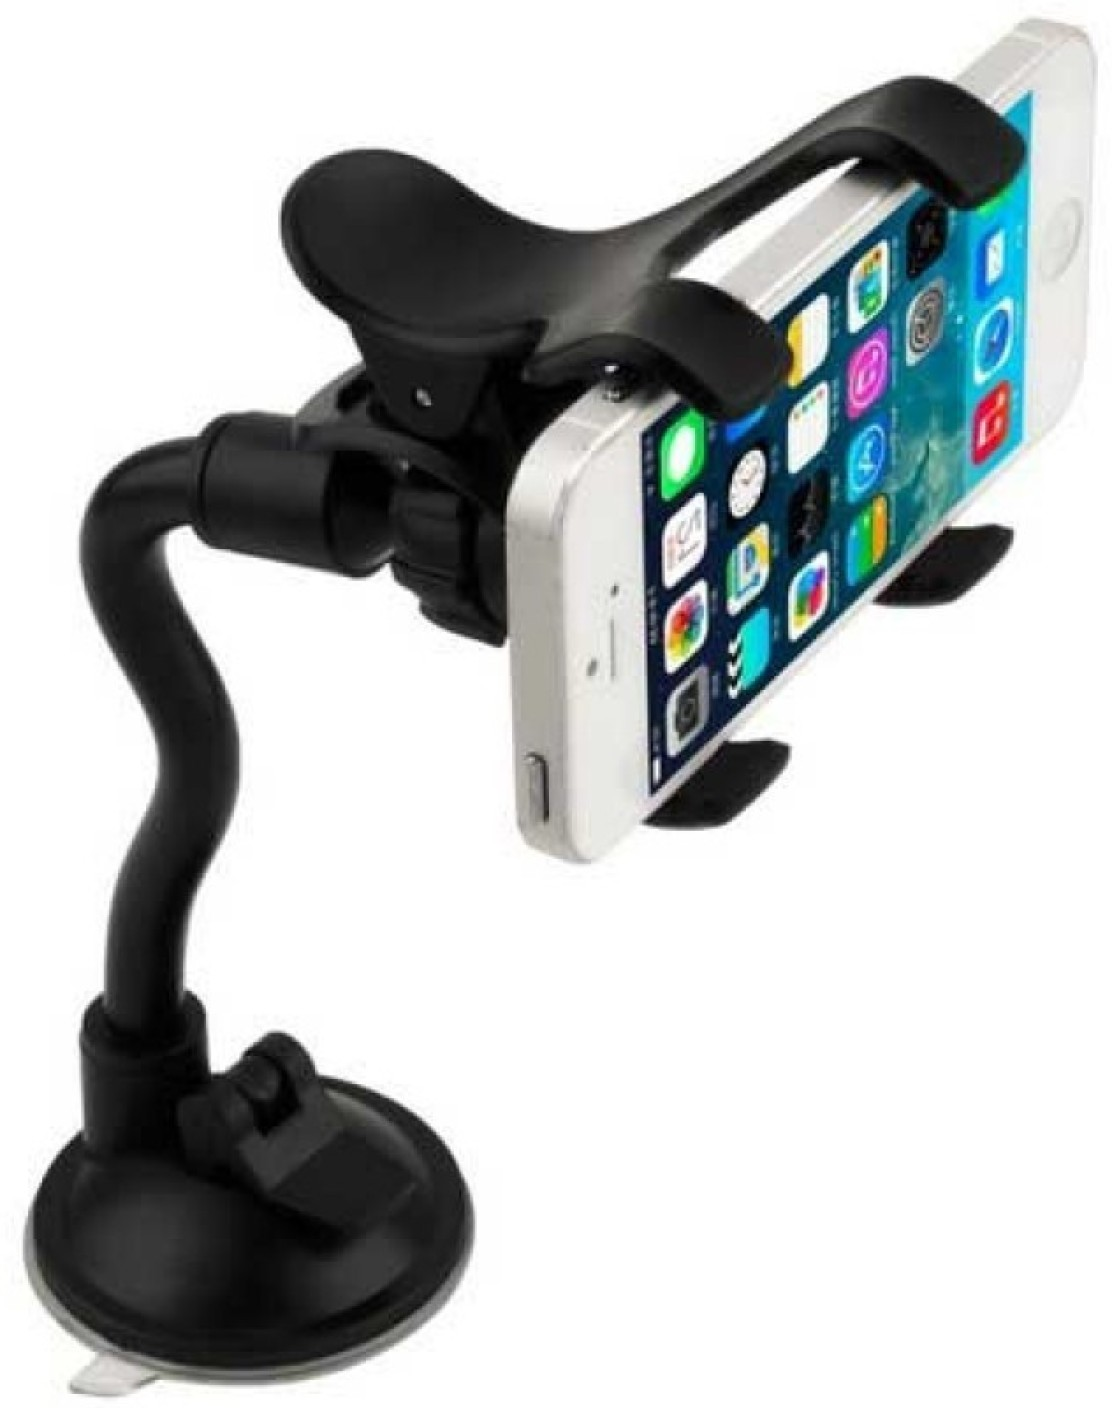 Brand New Car Mobile Holder for Windshield Price in India - Buy ...